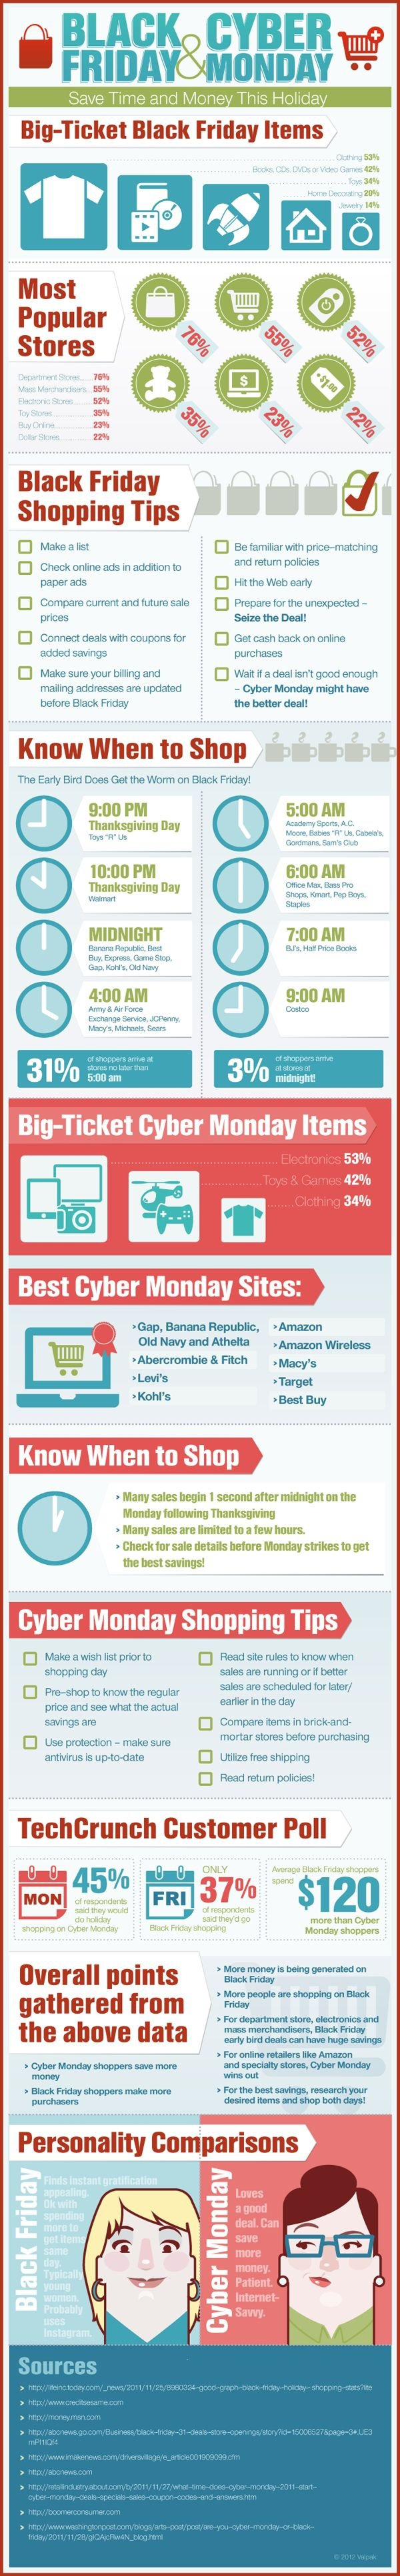 advertising,BLACKOCYBER,FRIDAY,MONDAY,Big-Ticket,